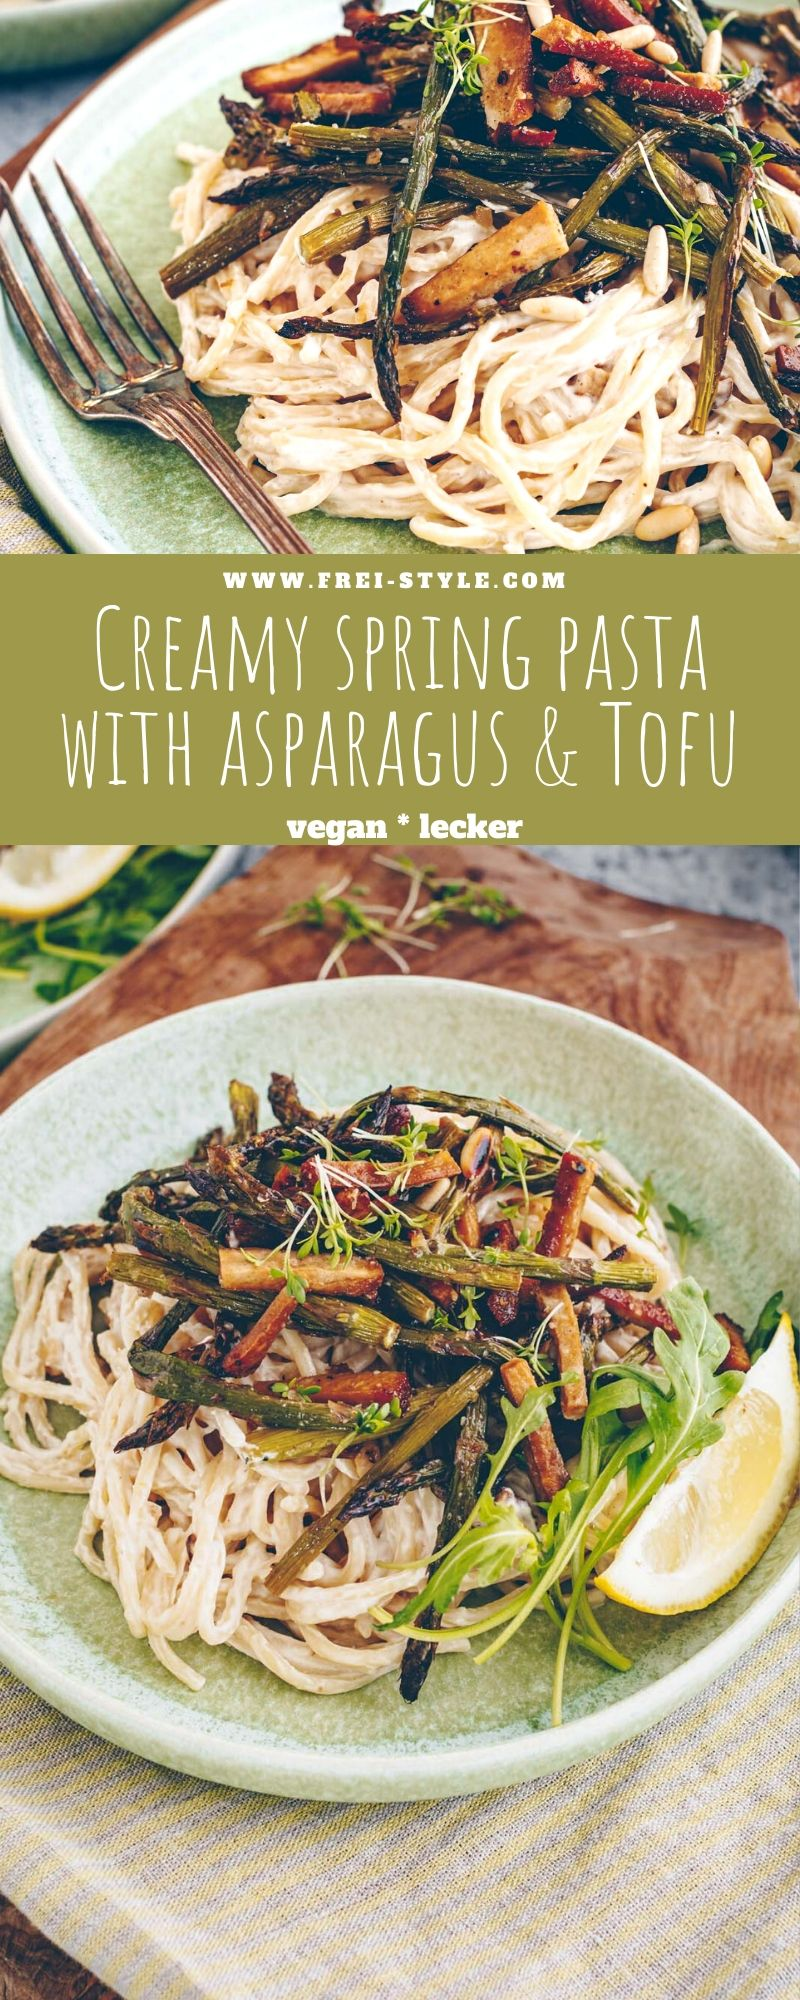 Creamy spring pasta with asparagus and tofu